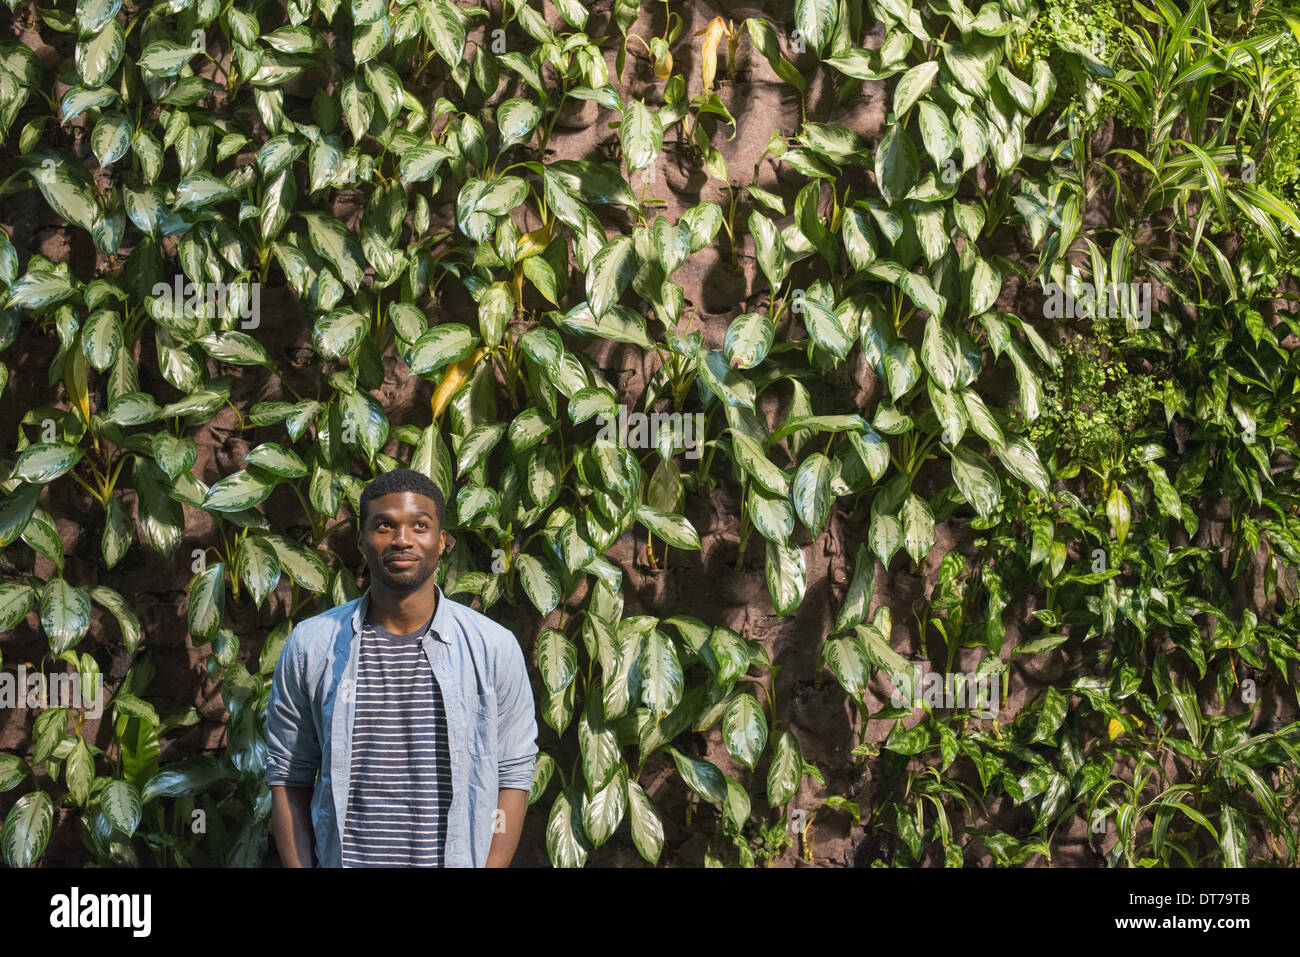 A man standing in front of a wall covered in climbing plants and ivy. - Stock Image